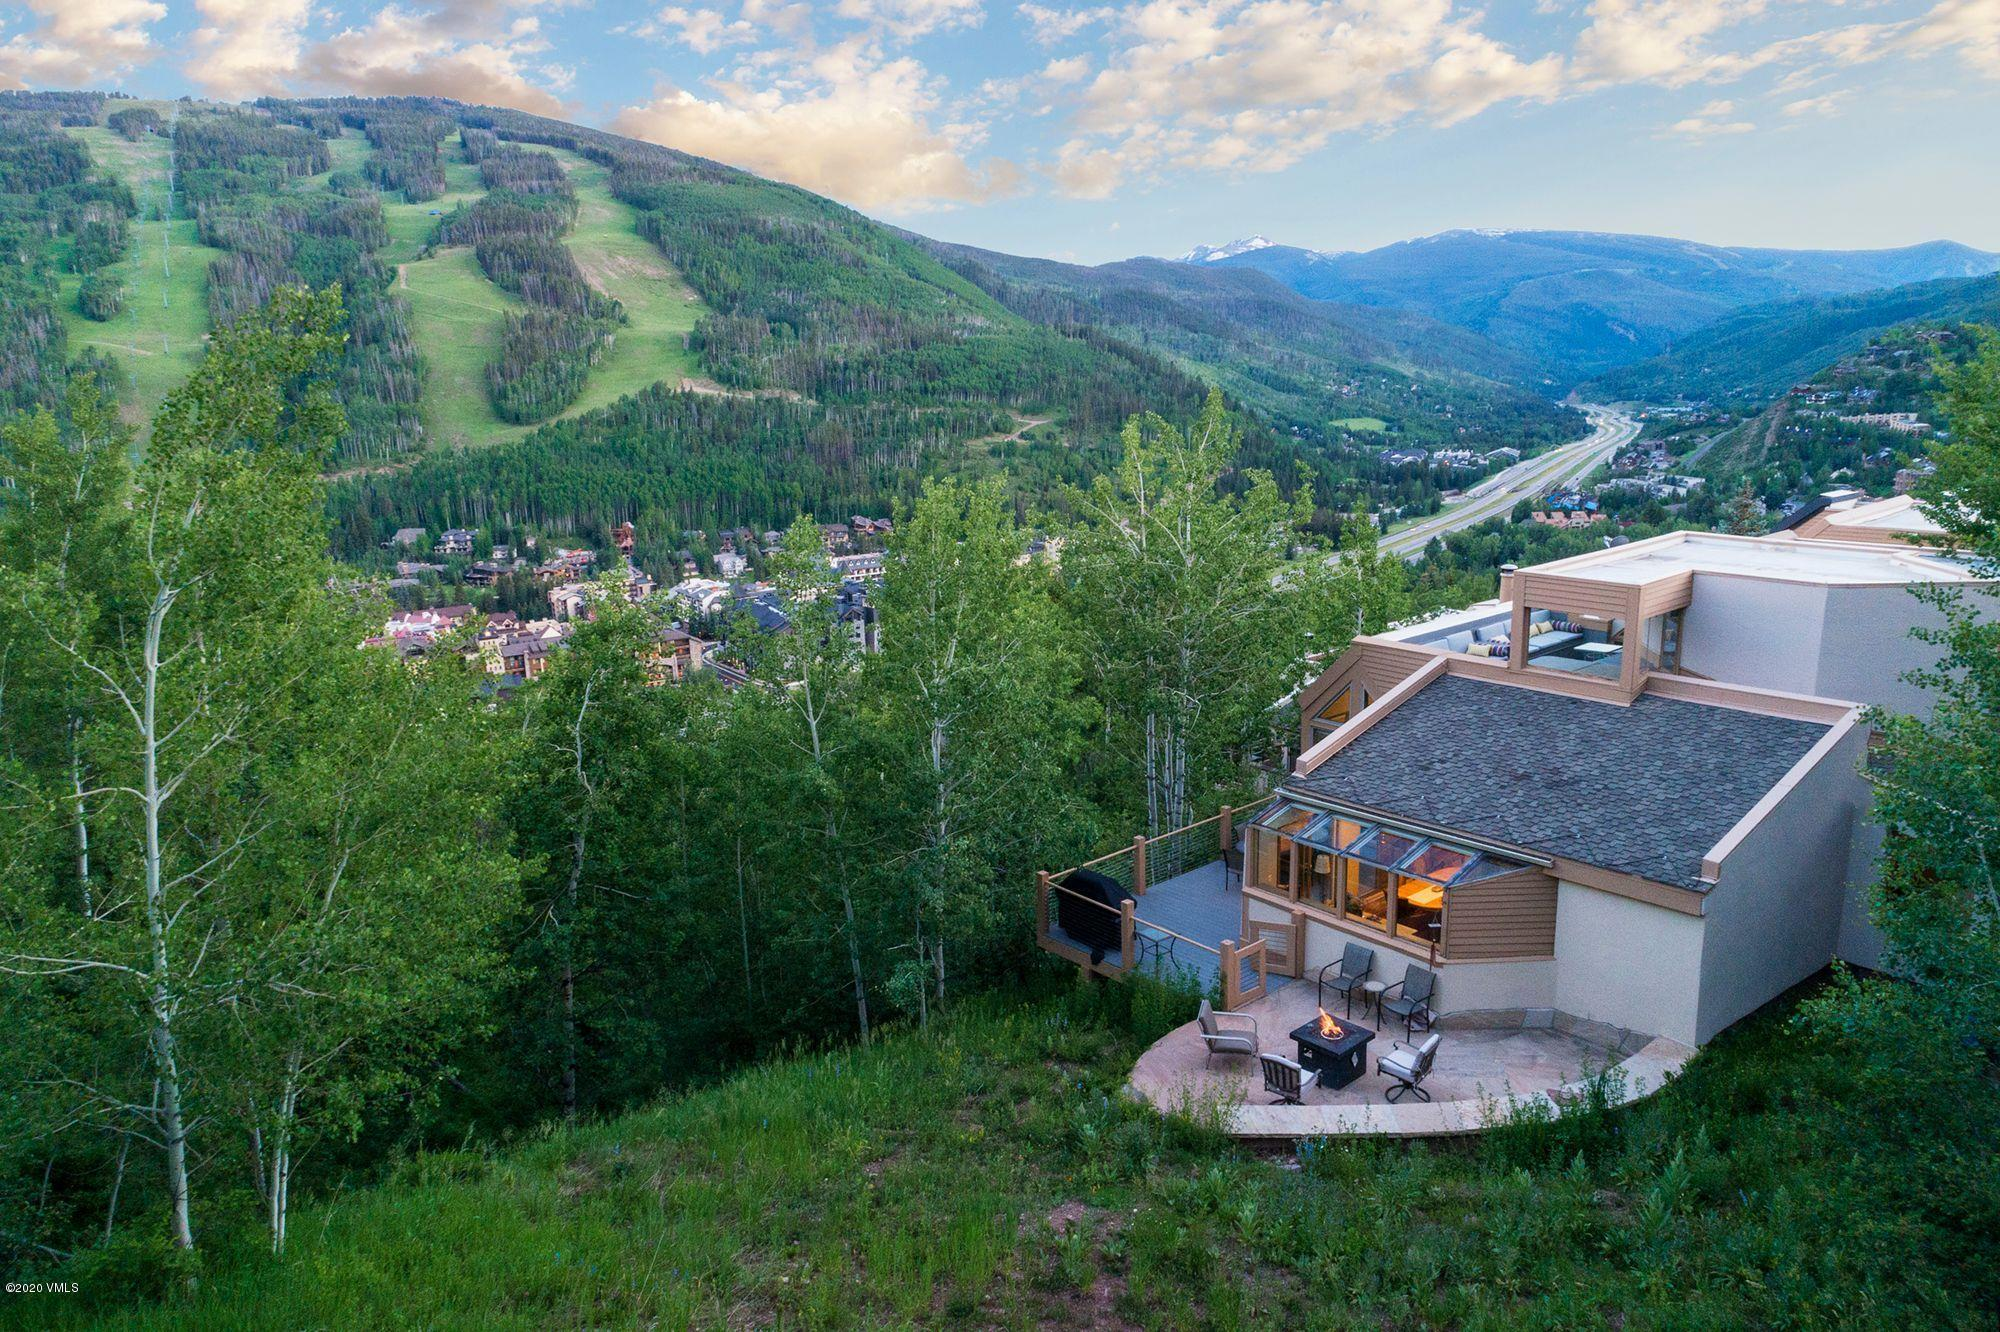 Unbelievable VIEWS of Vail, Holy Cross and Beaver Creek from this end unit. Enjoy the company of wildlife from the kitchen, dining room, deck, and recently added patio with fire pit. BEST end unit location in complex of 17 units. SUNNY lot, south east exposure with an abundance of windows and light! Immaculate views from EVERY bedroom, including stunning expansive views of the whole front side of Vail from the master bathroom. Inviting rooftop hot tub and deck with ample comfy seating to wind down after a day of skiing or hiking. This condo ownership feels and lives like a single family home being on the end. Very RARE FIND!!Upgrades include: New patio with fire pit on the east end of the unit. New TREX decking off the dining room which has doubled the space. New TREX decking on the top level with a NEW hot tub, along with customized cushions and new build-in seating by hot tub. New carpet, paint and additional water heater. New double ovens in kitchen. Added the shades in the living room and master bedroom with upper shades on remote. Replaced the storm and screen door at the front entrance. New mattress and box spring in master.Please note:Unit is rented on and off through September 19th 2020 and the Buyers must honor those rentals in place.